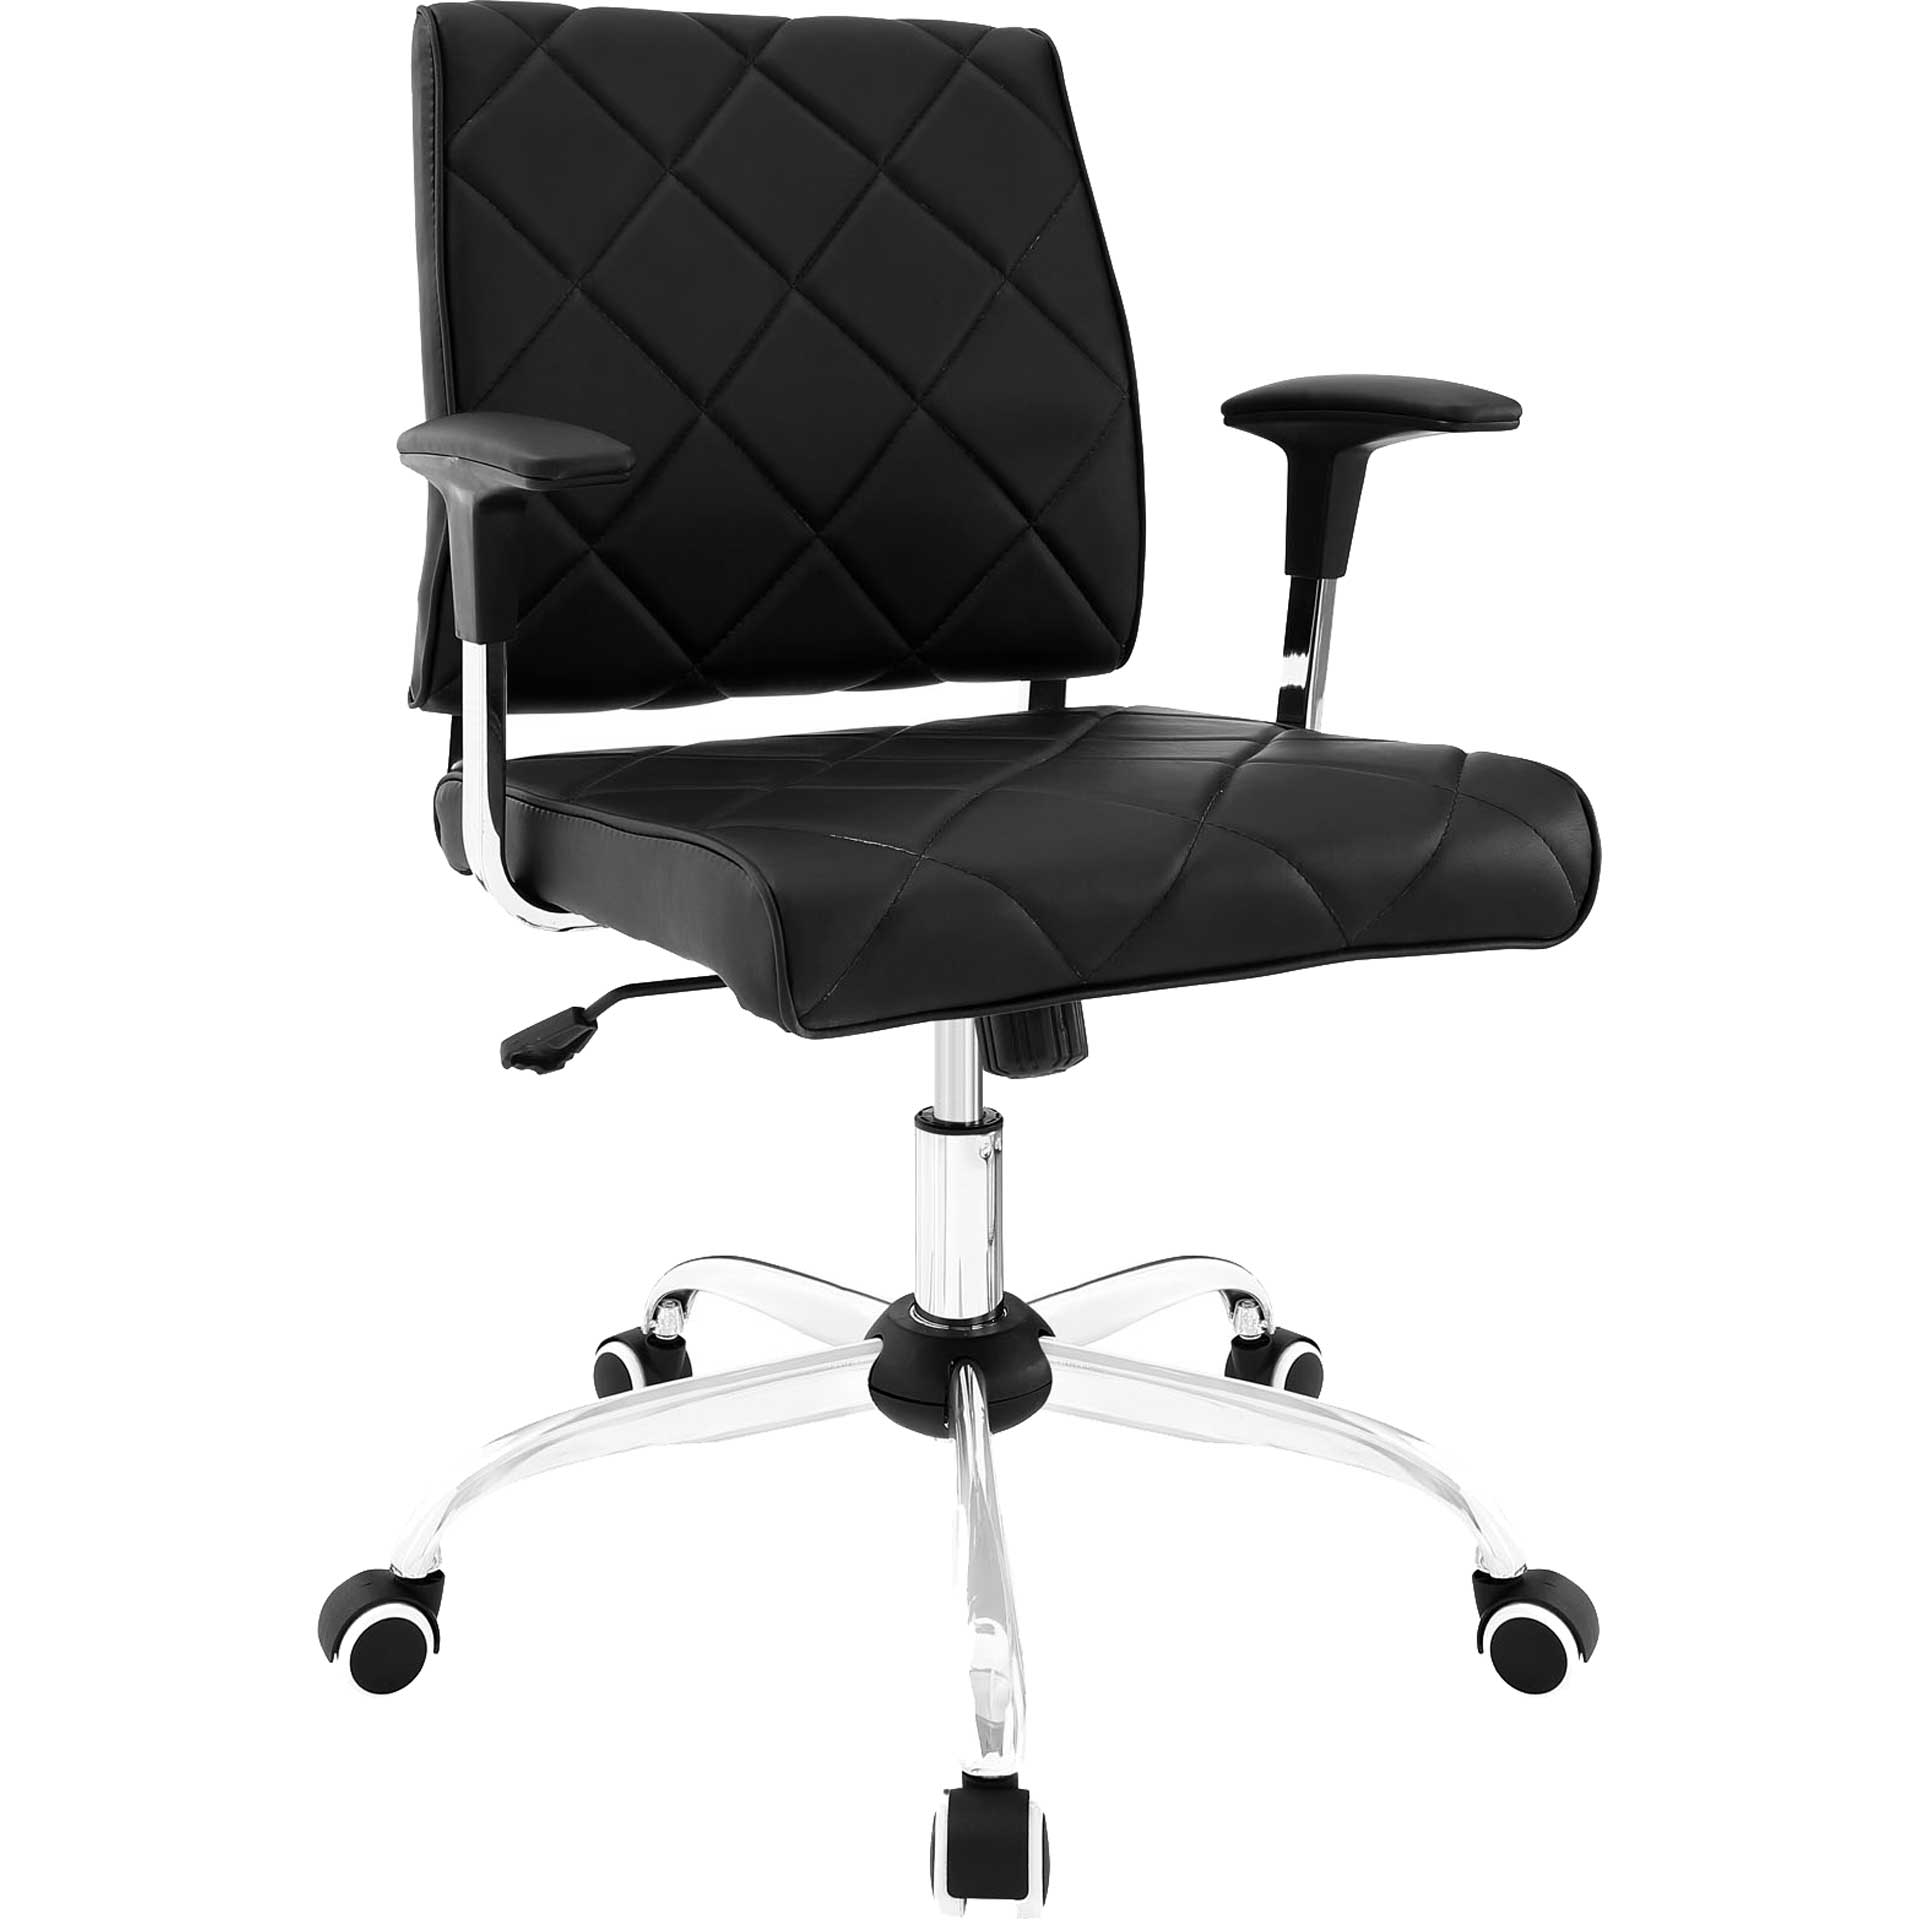 Lochsa Vinyl Office Chair Black